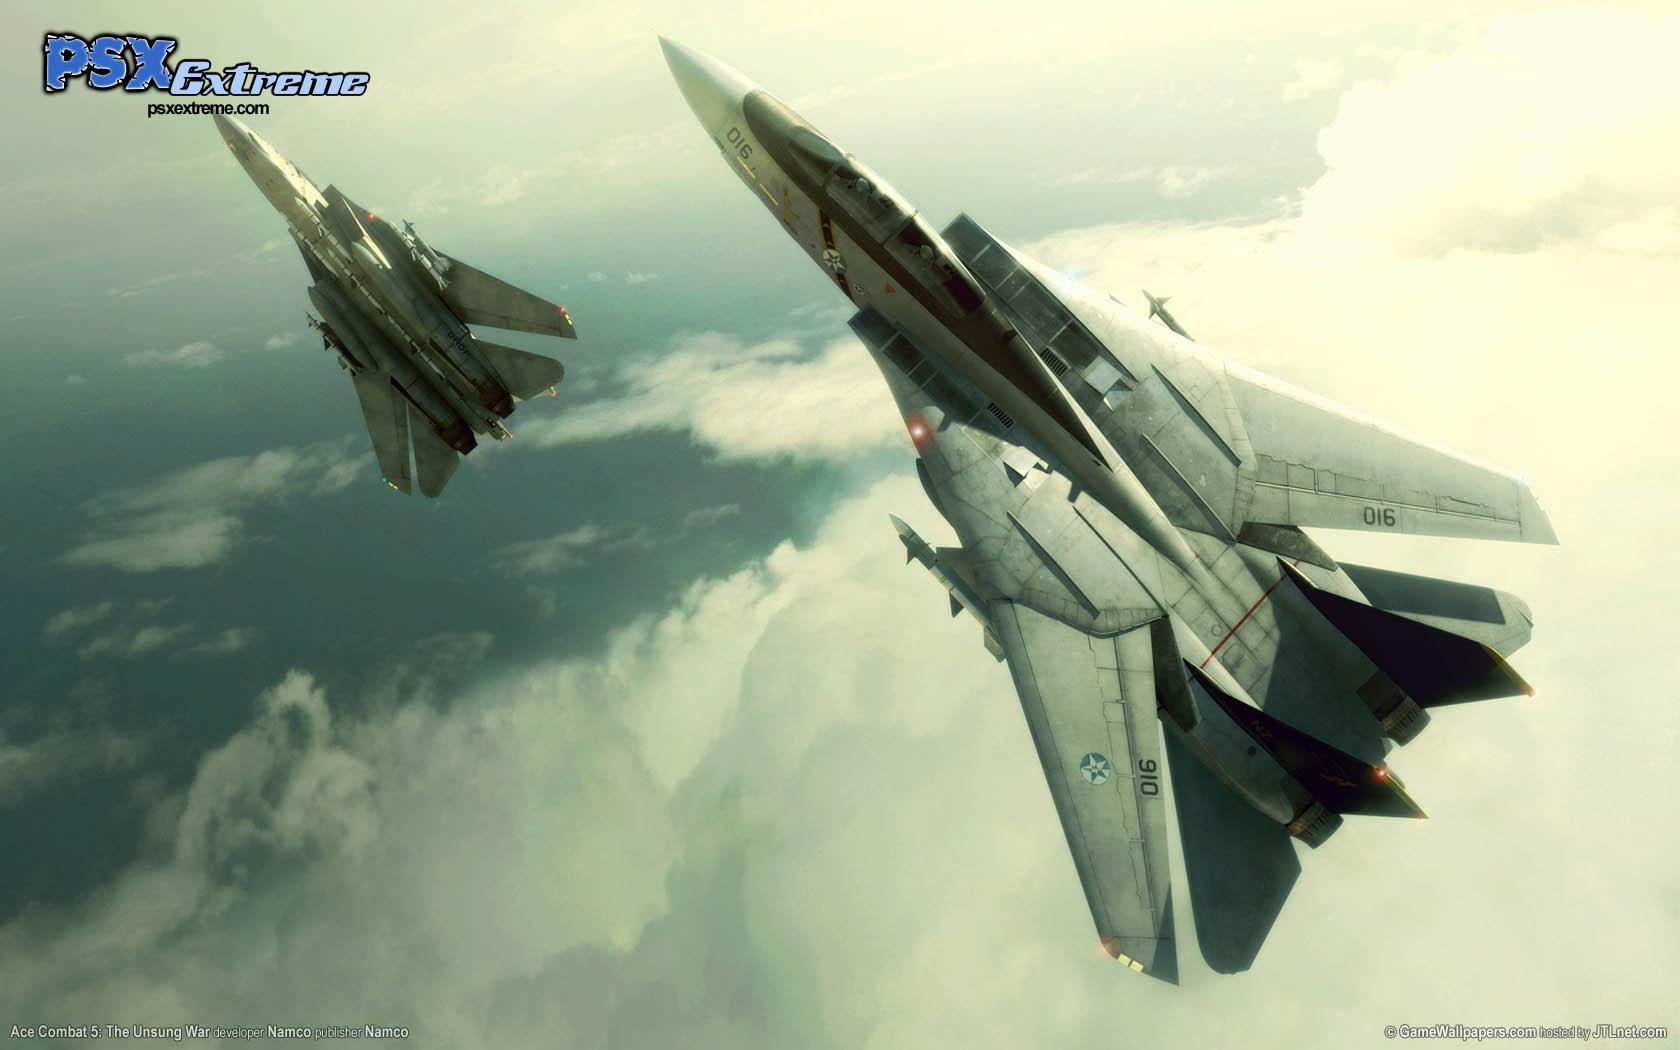 Ace Combat Wallpapers